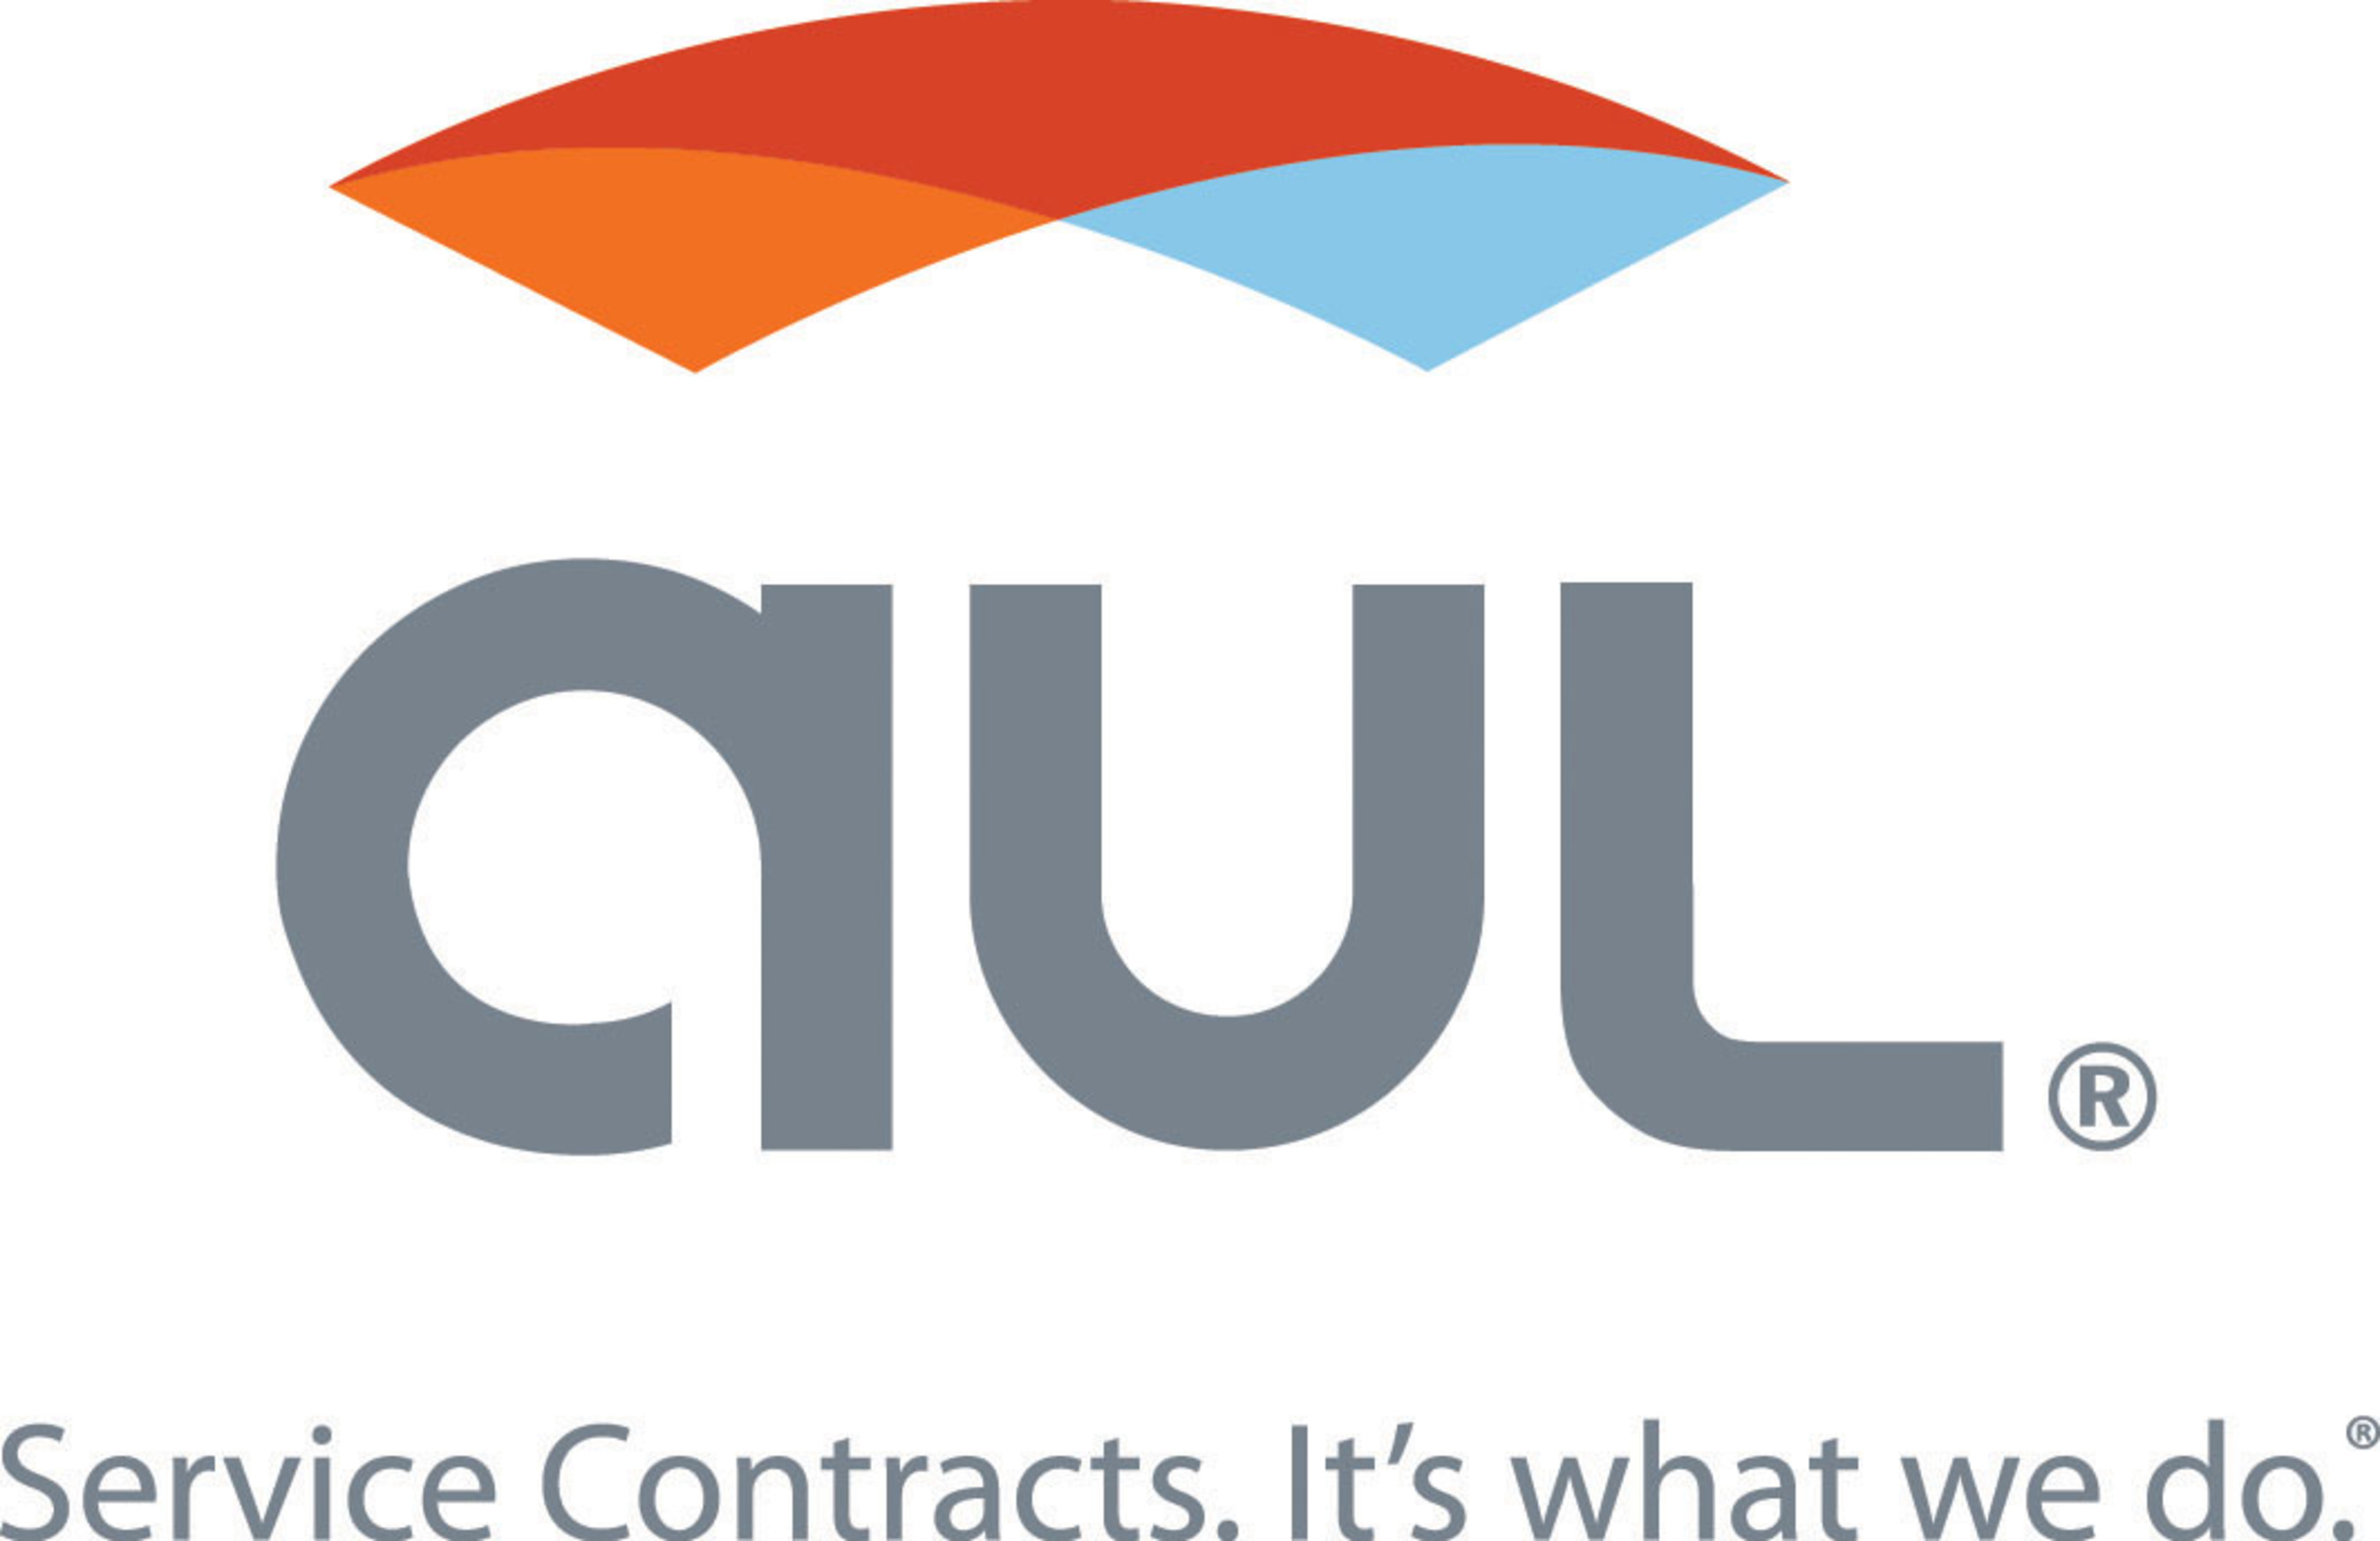 AUL Corp - Service Contracts. It's what we do.